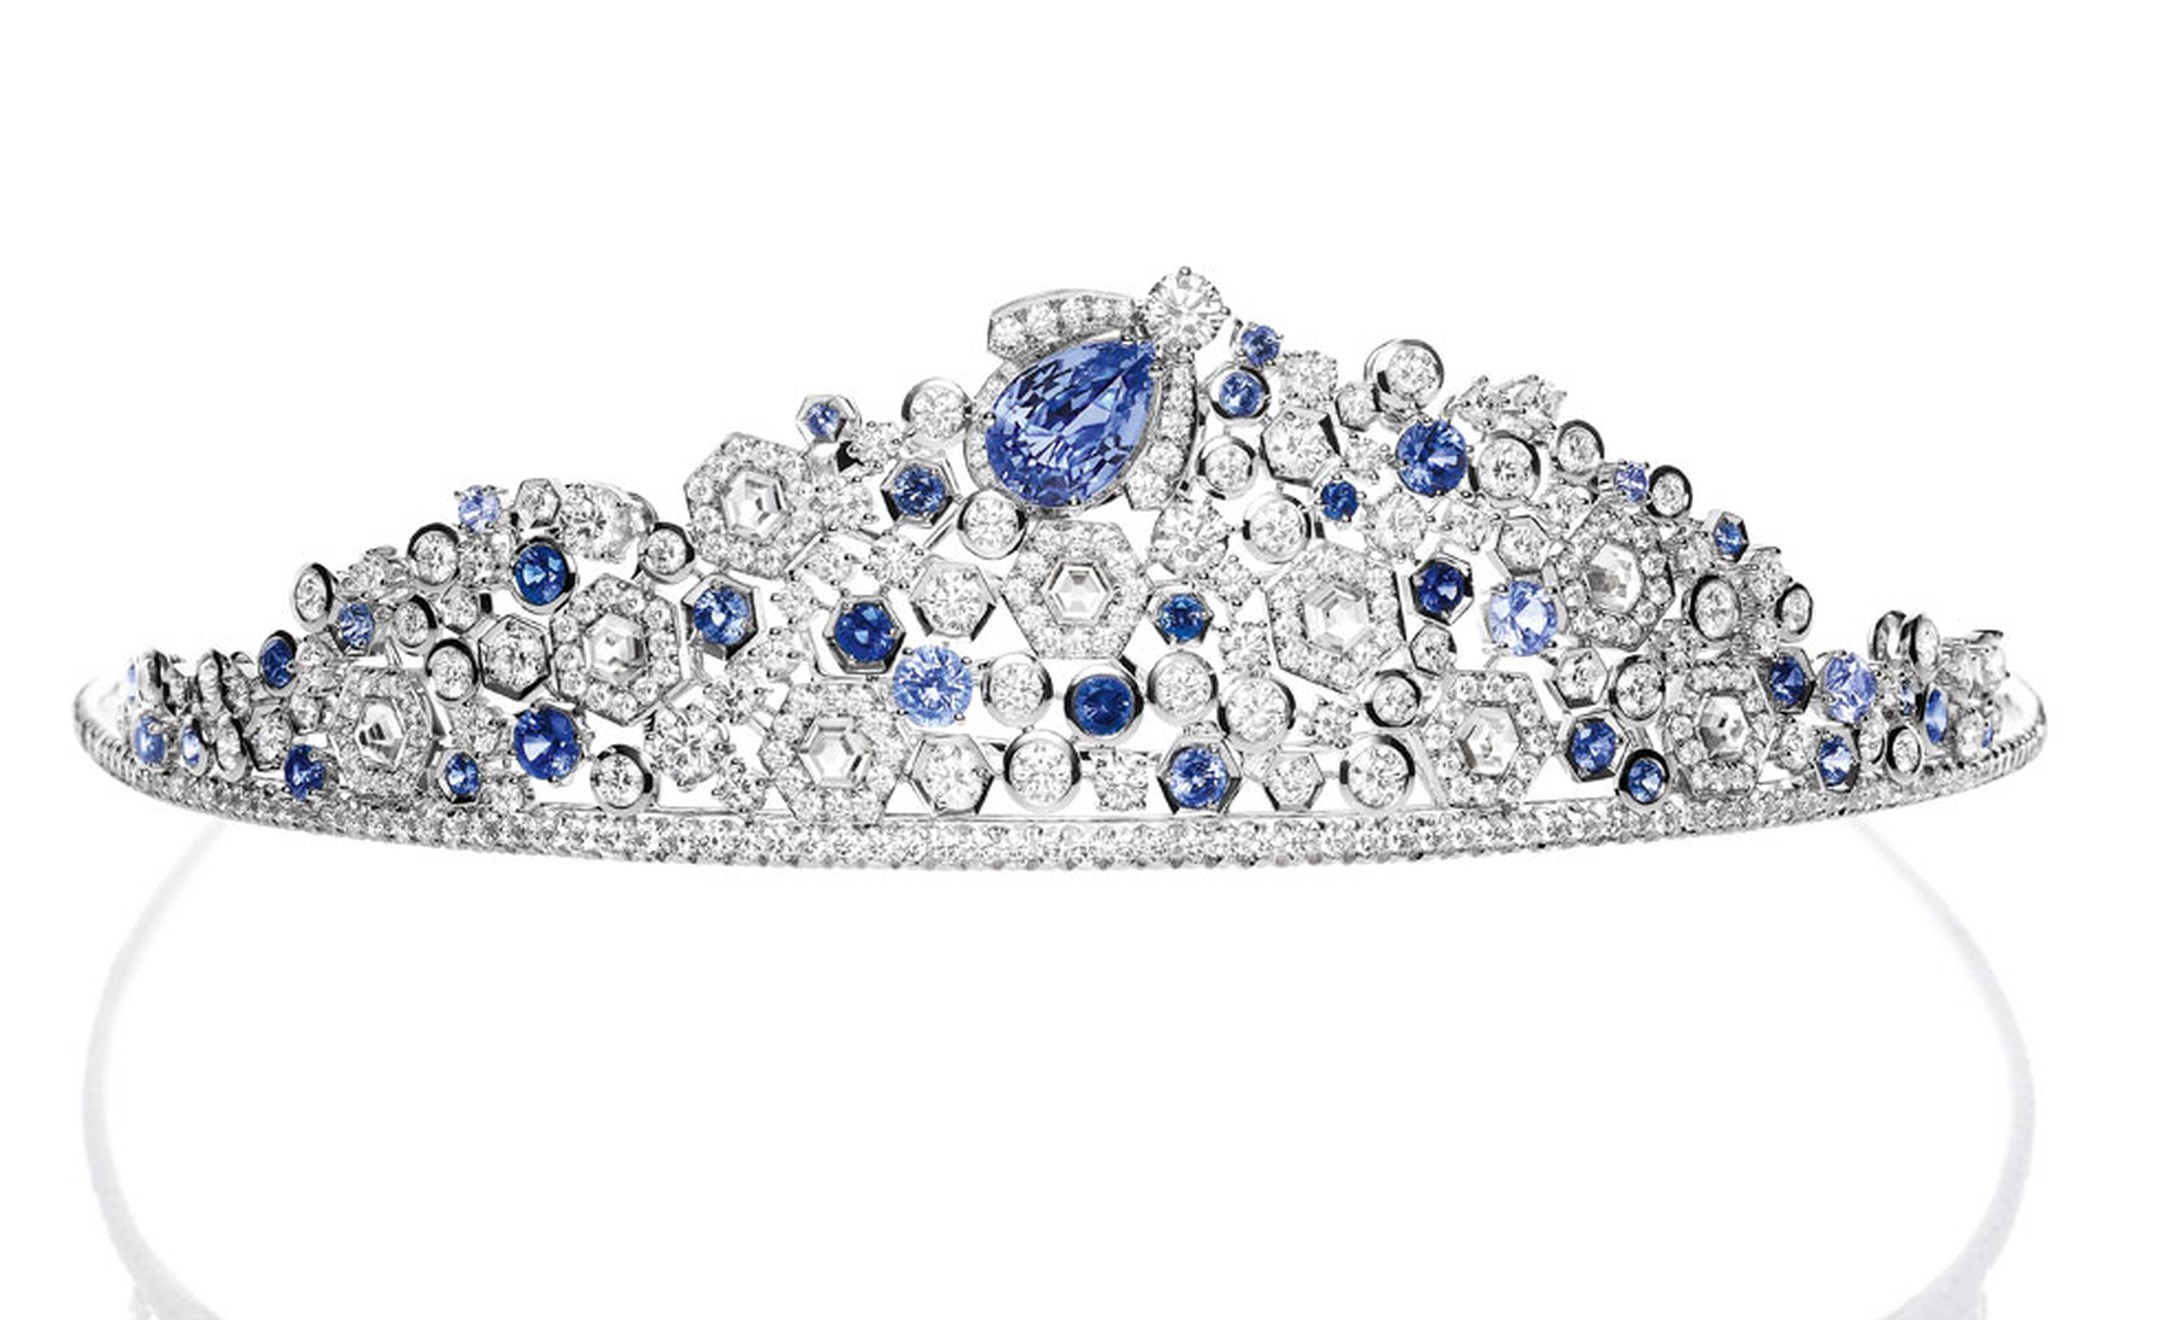 Chaumet's newest tiara - yes they are still making them - is the Bee My Love diademe that features buzzing blue sapphires bees busy with their diamond and white gold honeycomb. The central piece detaches and can be worn as a brooch.